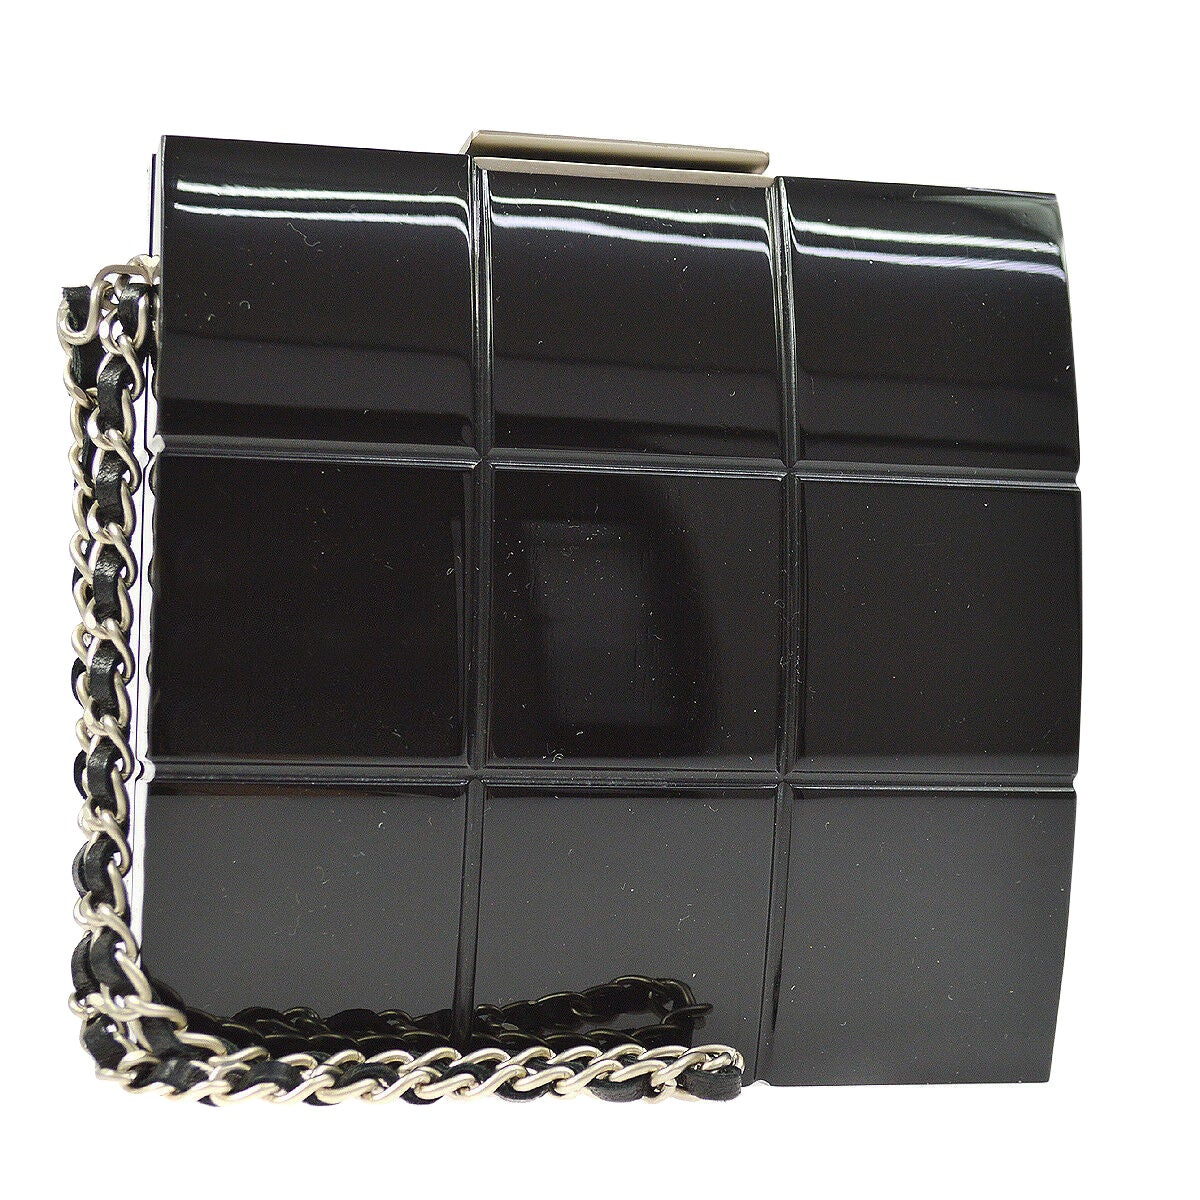 Chanel Runway Black Plastic Silver Chain Evening Clutch Bag